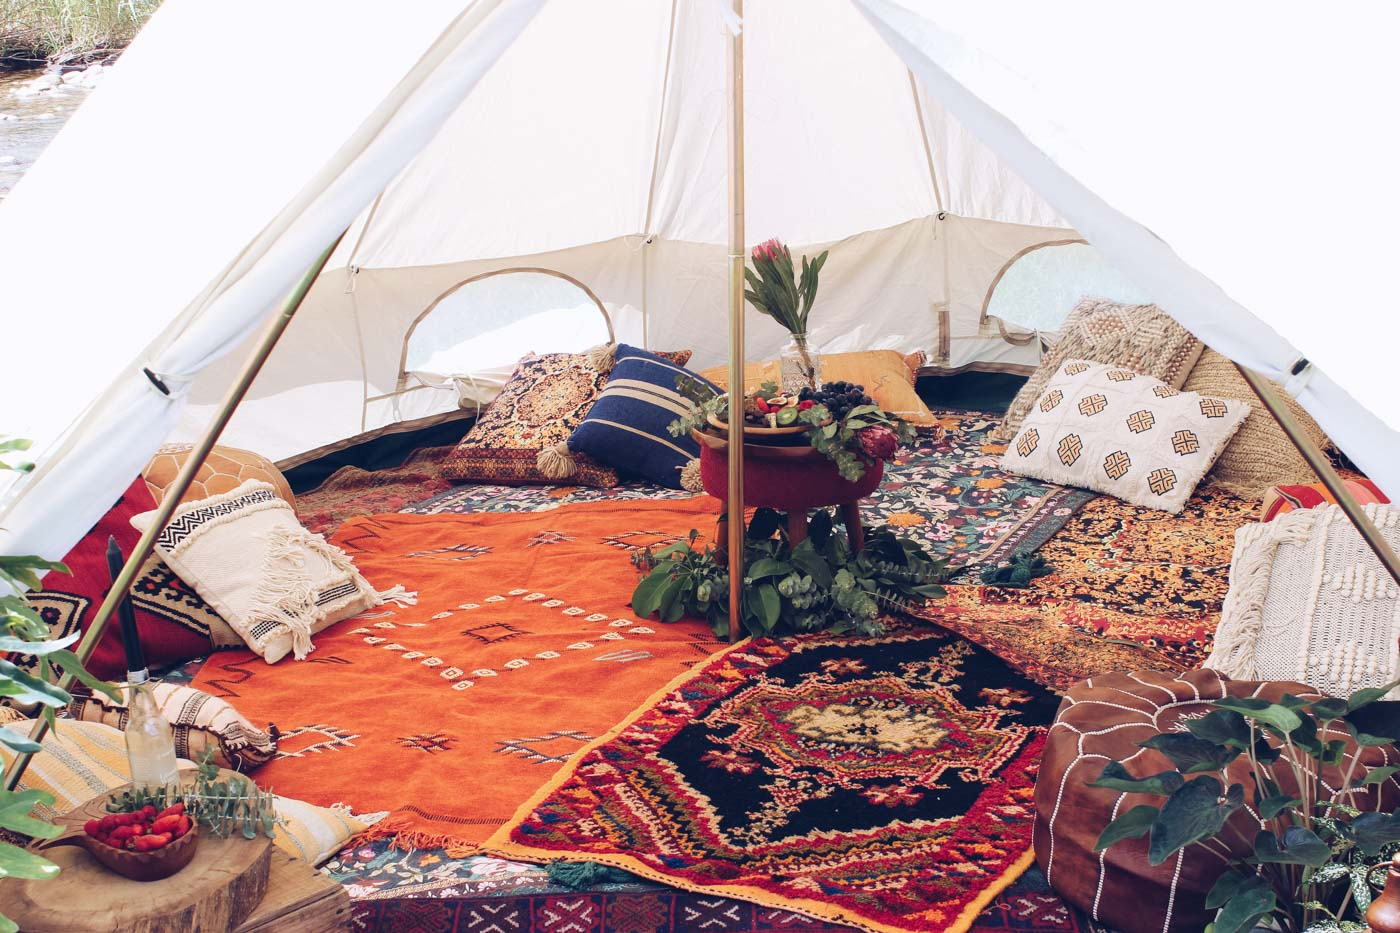 the_Collection_co_grazing_table_cairns_weddings_catering_grazing_platter_hire_pop_up_picnic_bell_tent_event_hire_styling-19-2.jpg